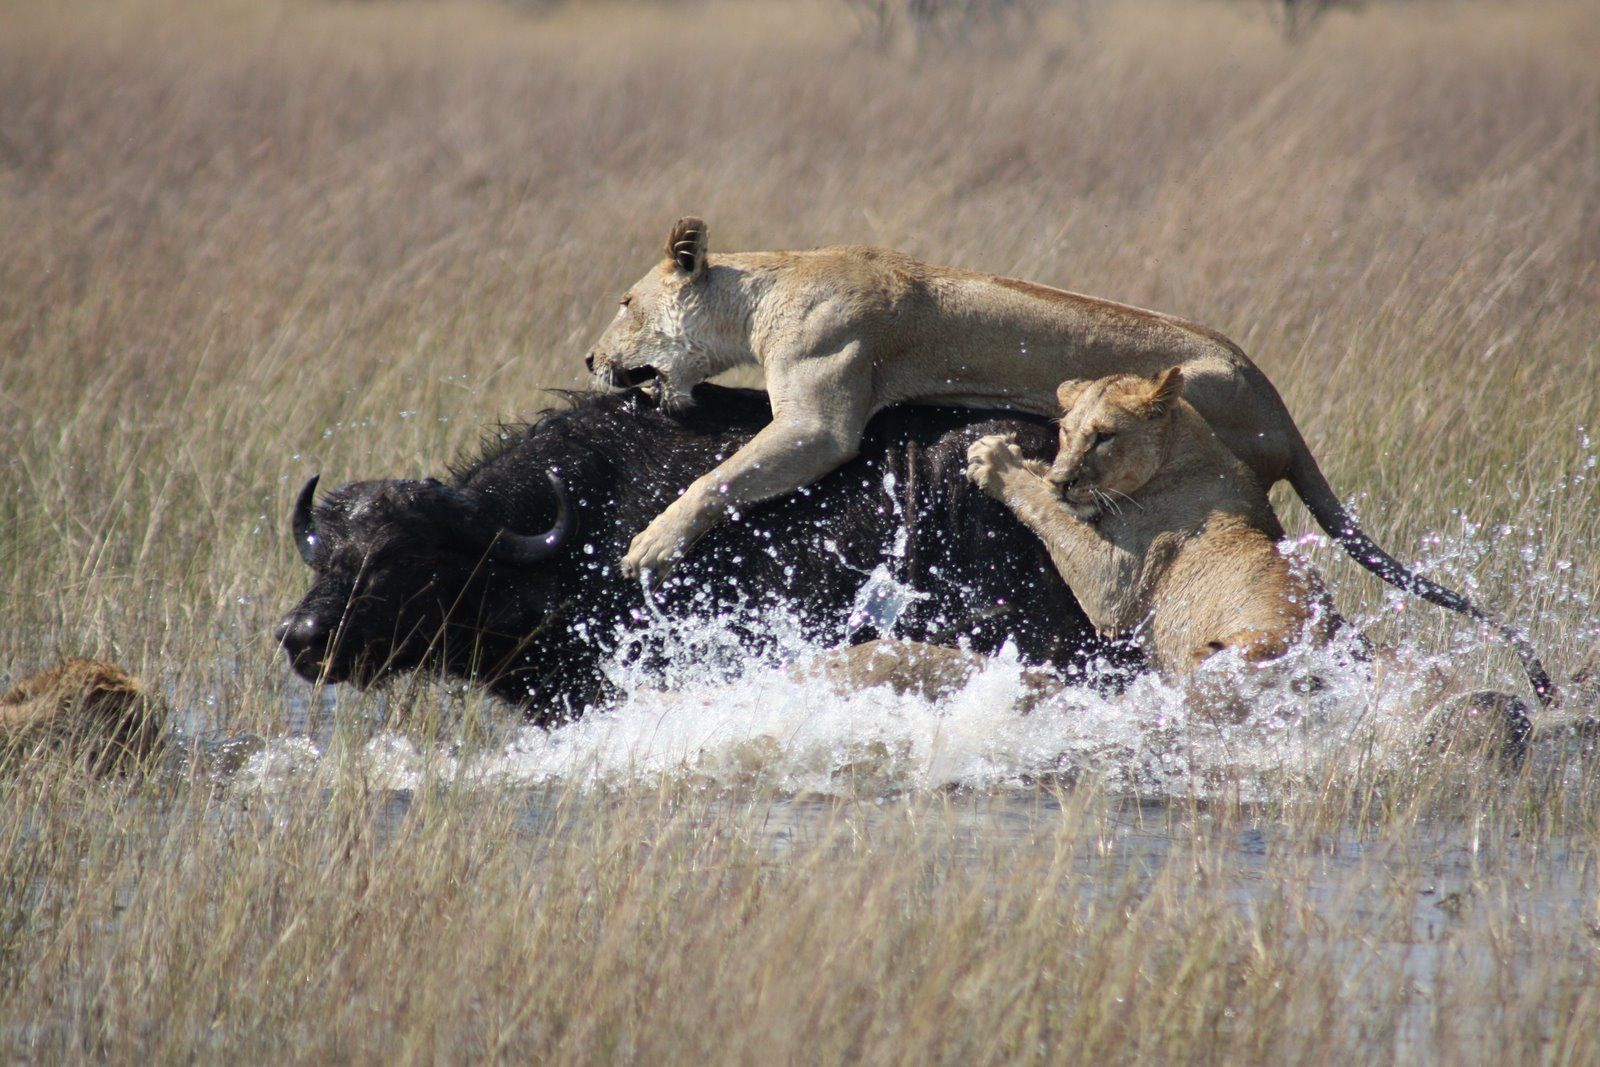 This is a example of prey predator where the lion is hunting a buffalo